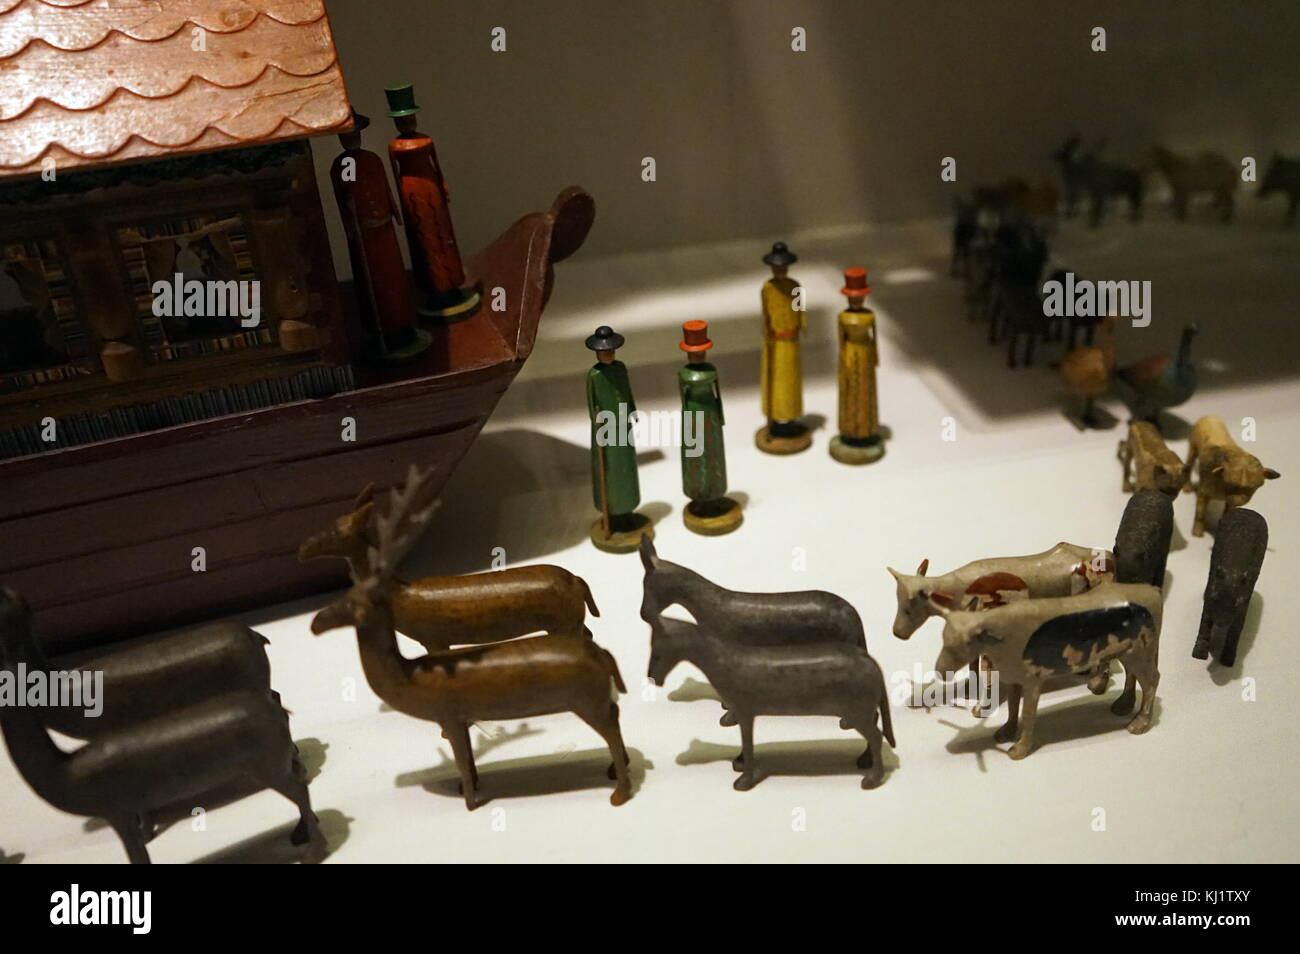 Wooden figurines used to recreate the story of Noah's Ark. The animals are shown here in pairs ready to board - Stock Image